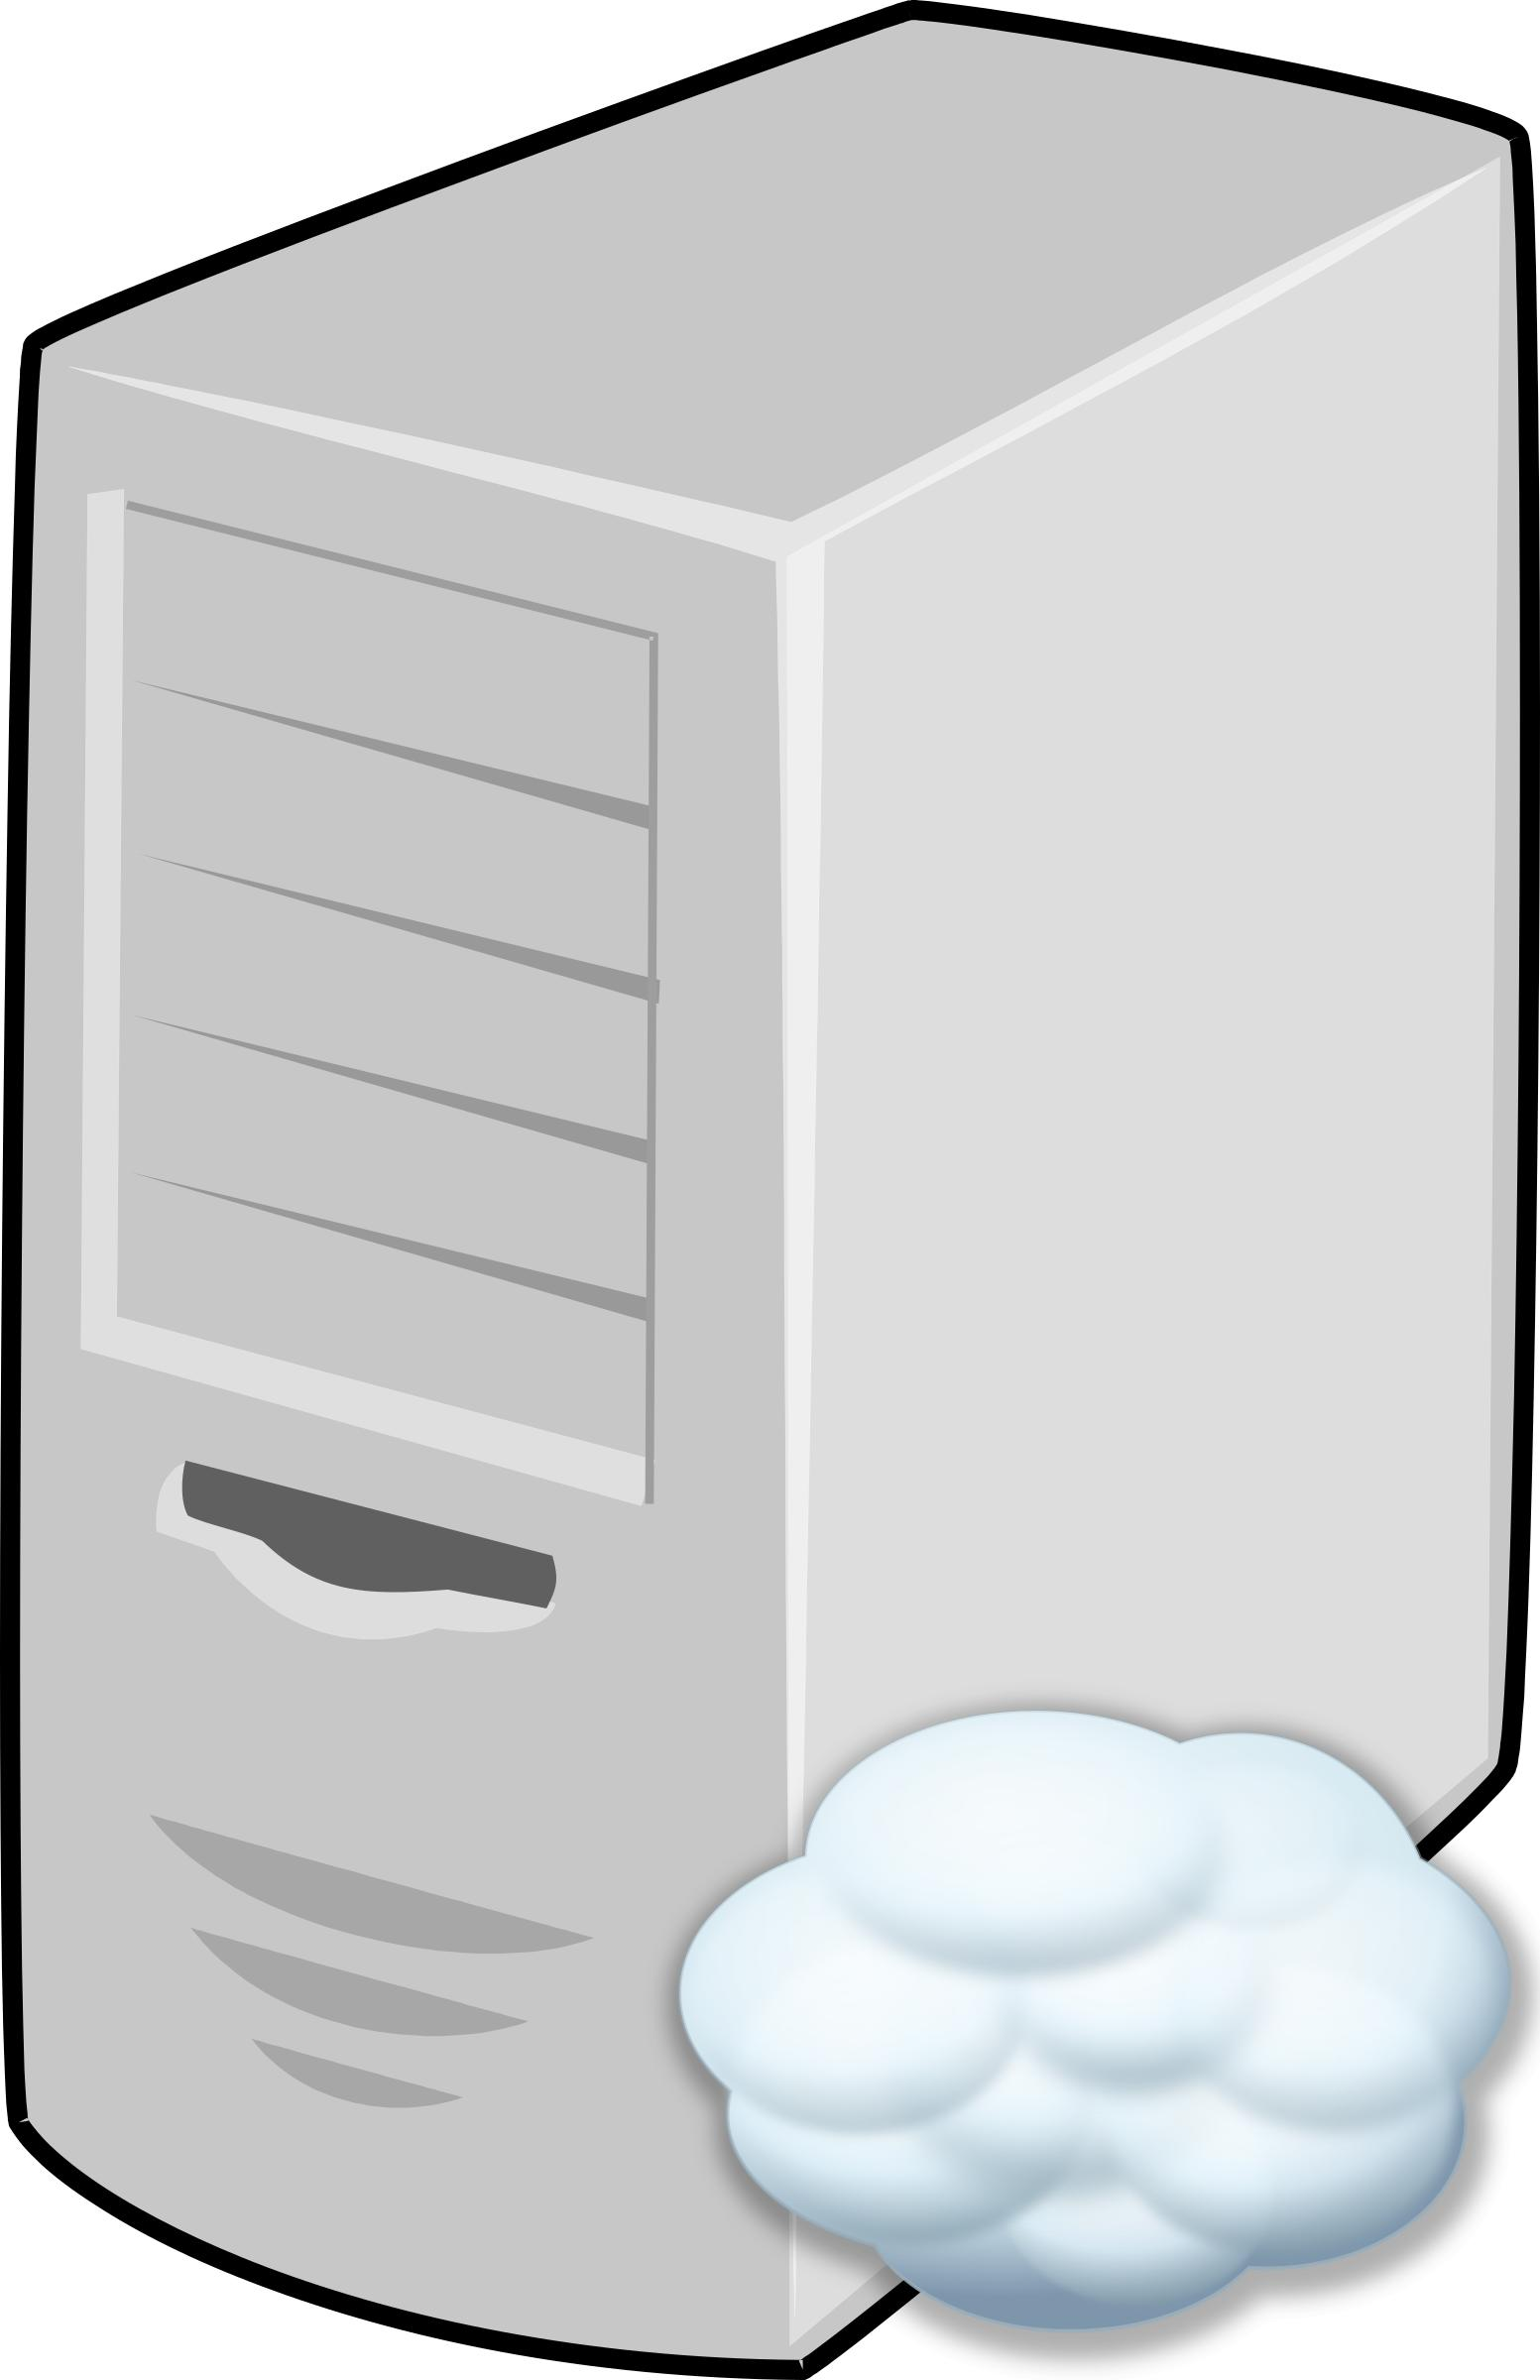 Cloud icons png free. Server clipart server icon svg transparent download